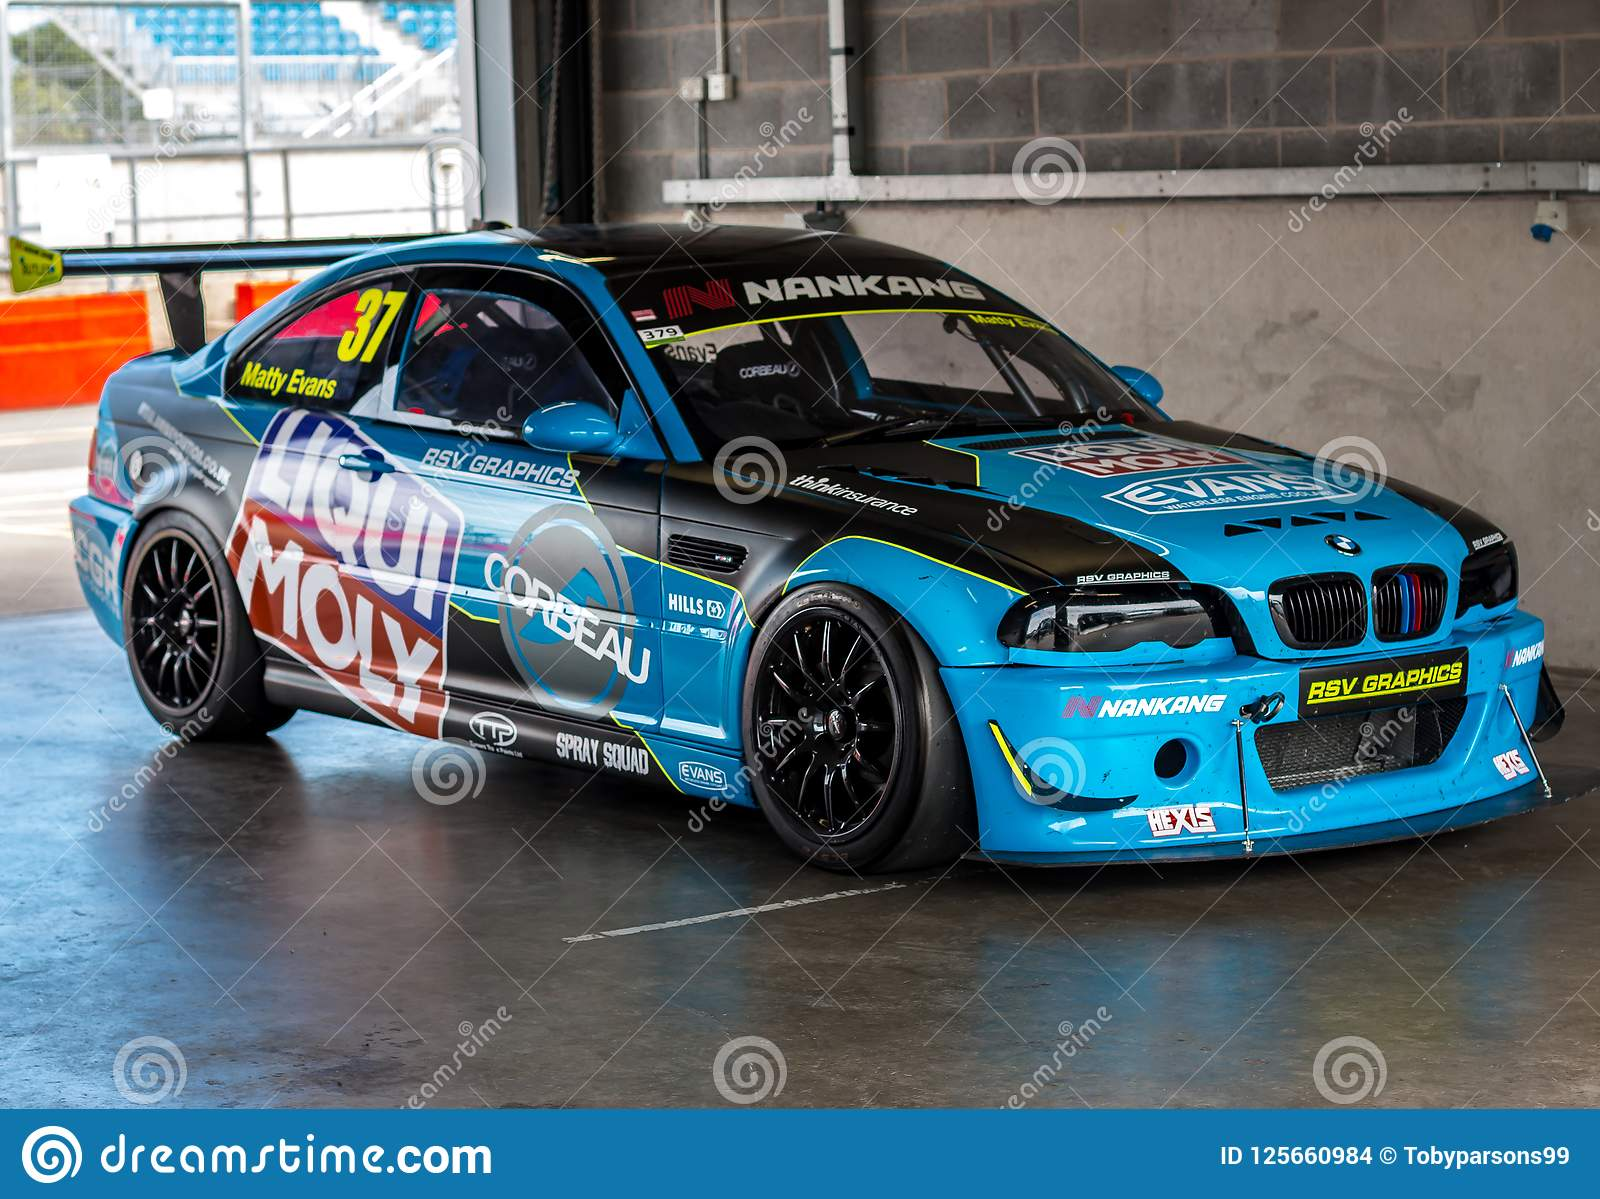 E46 M3 Photos Free Royalty Free Stock Photos From Dreamstime